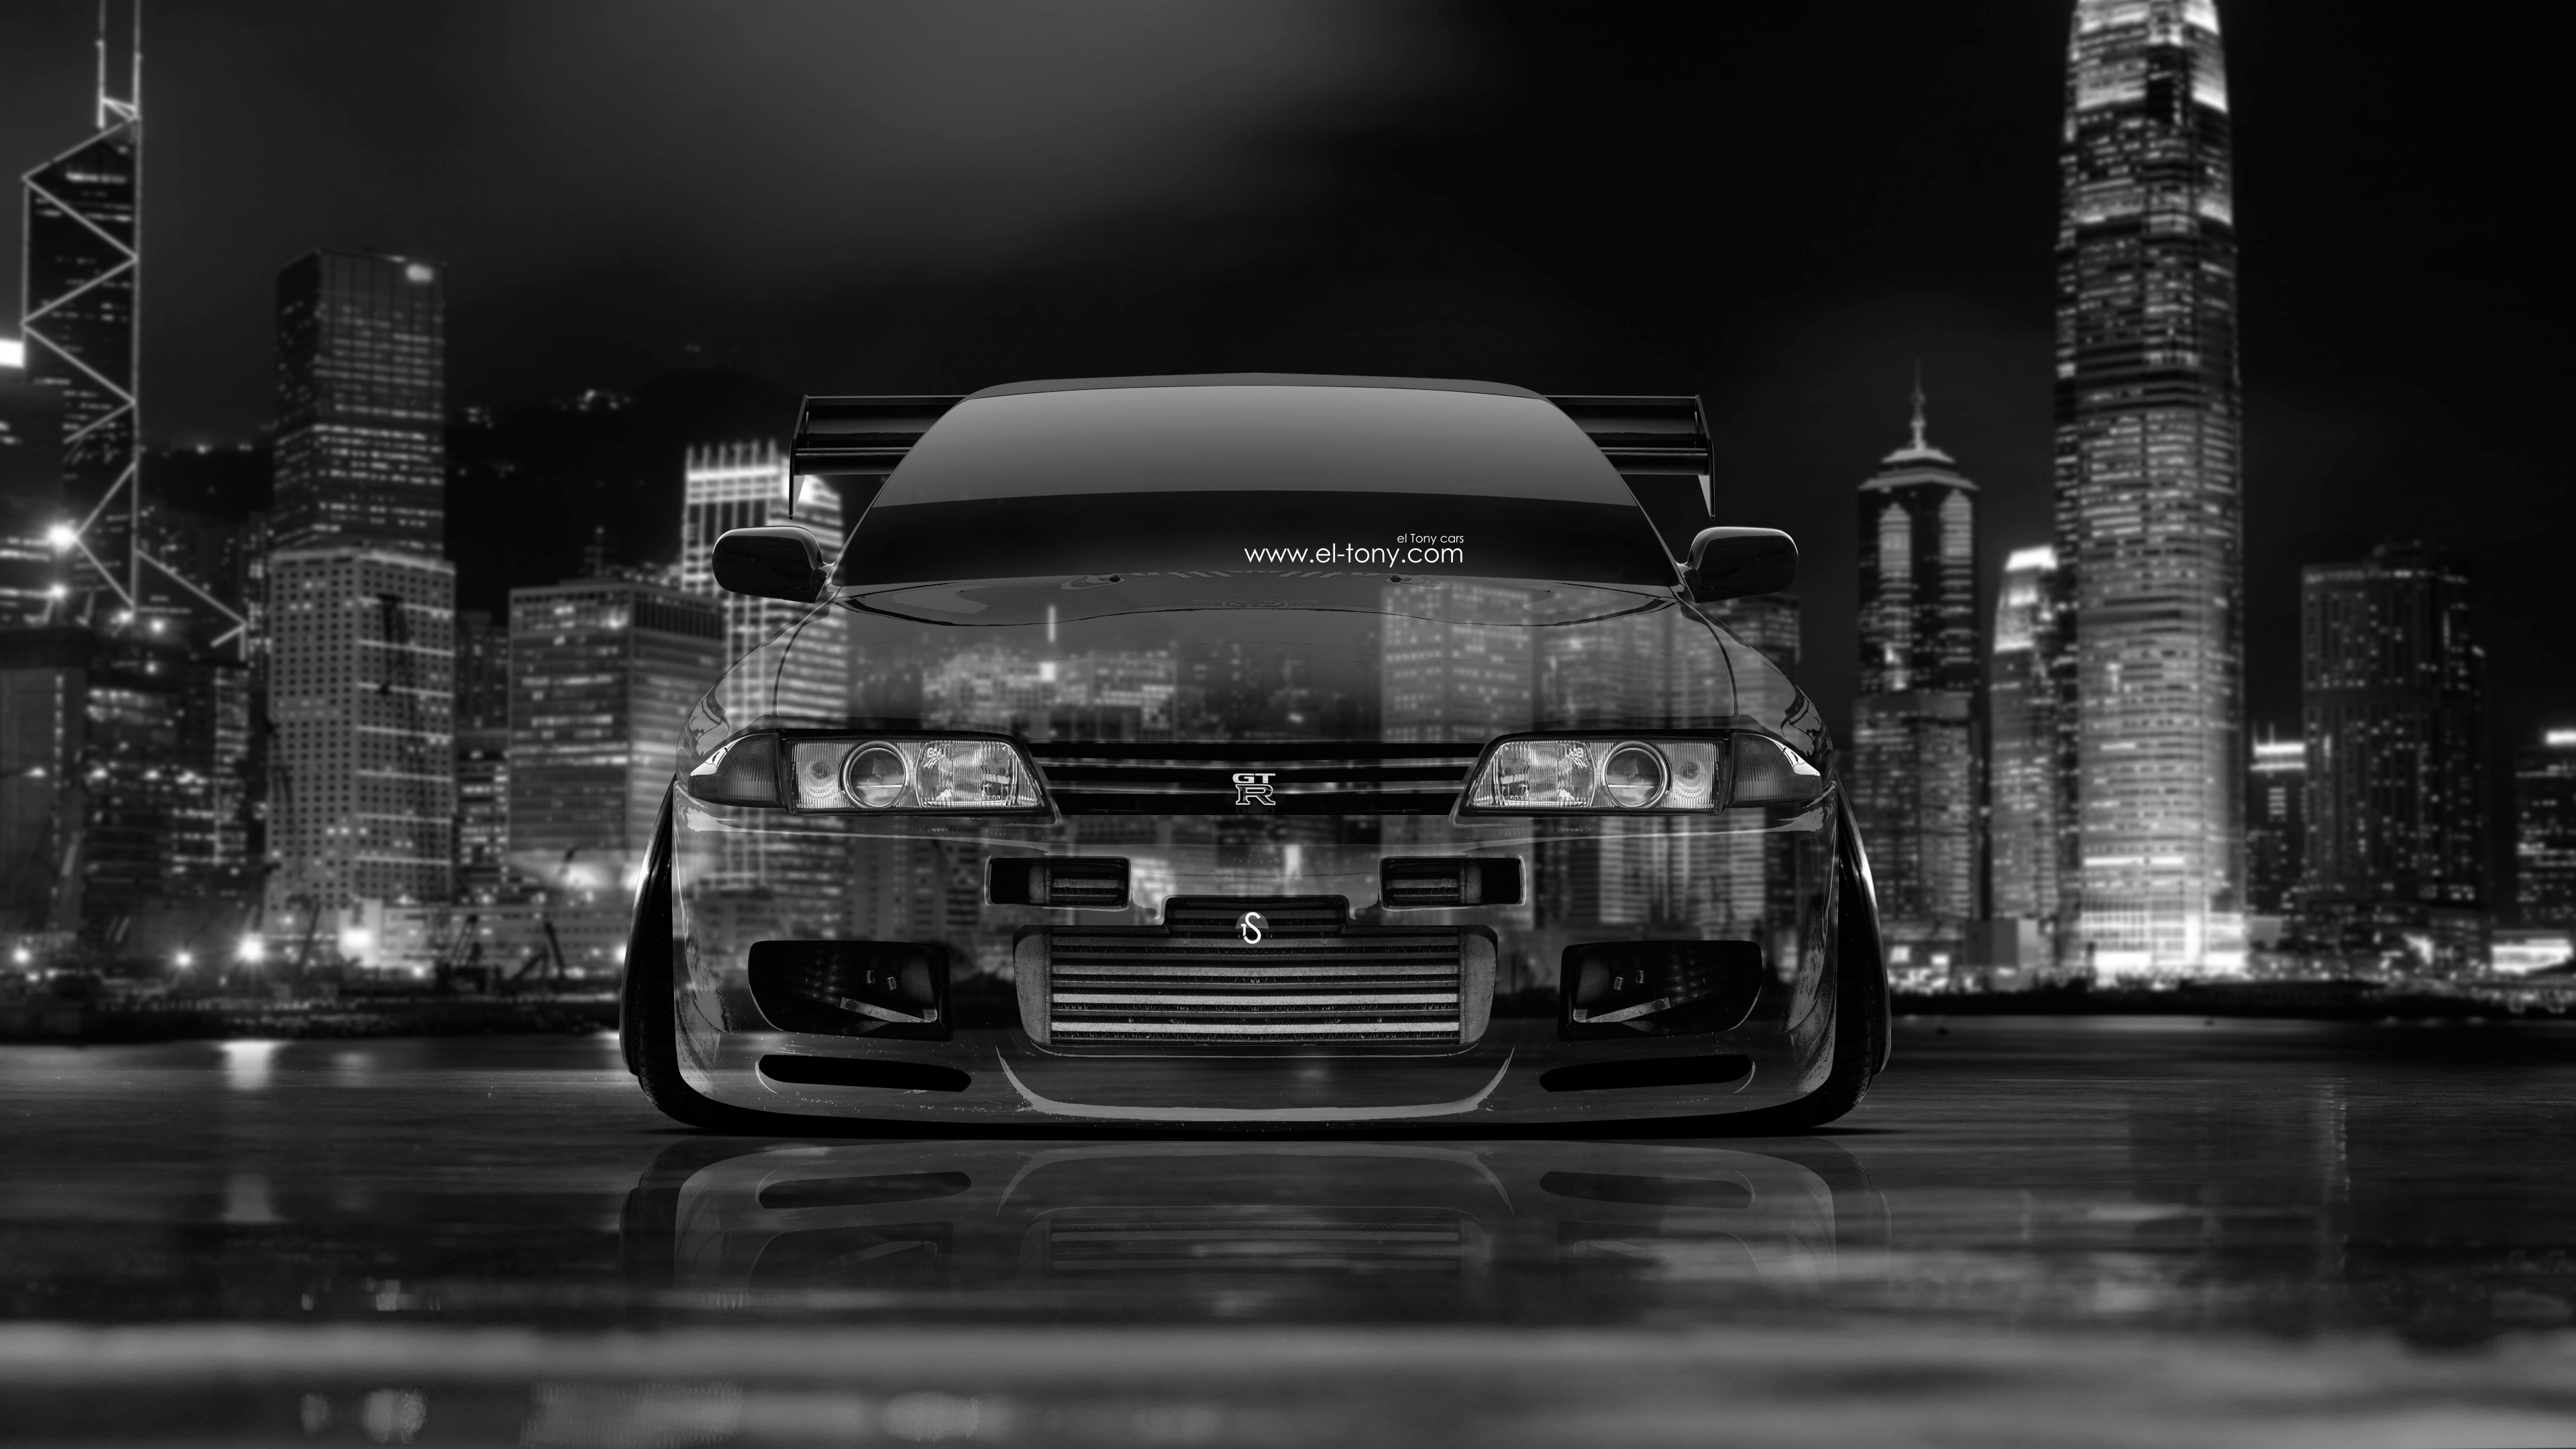 Superb Nissan Skyline GTR R32 JDM Front Crystal City